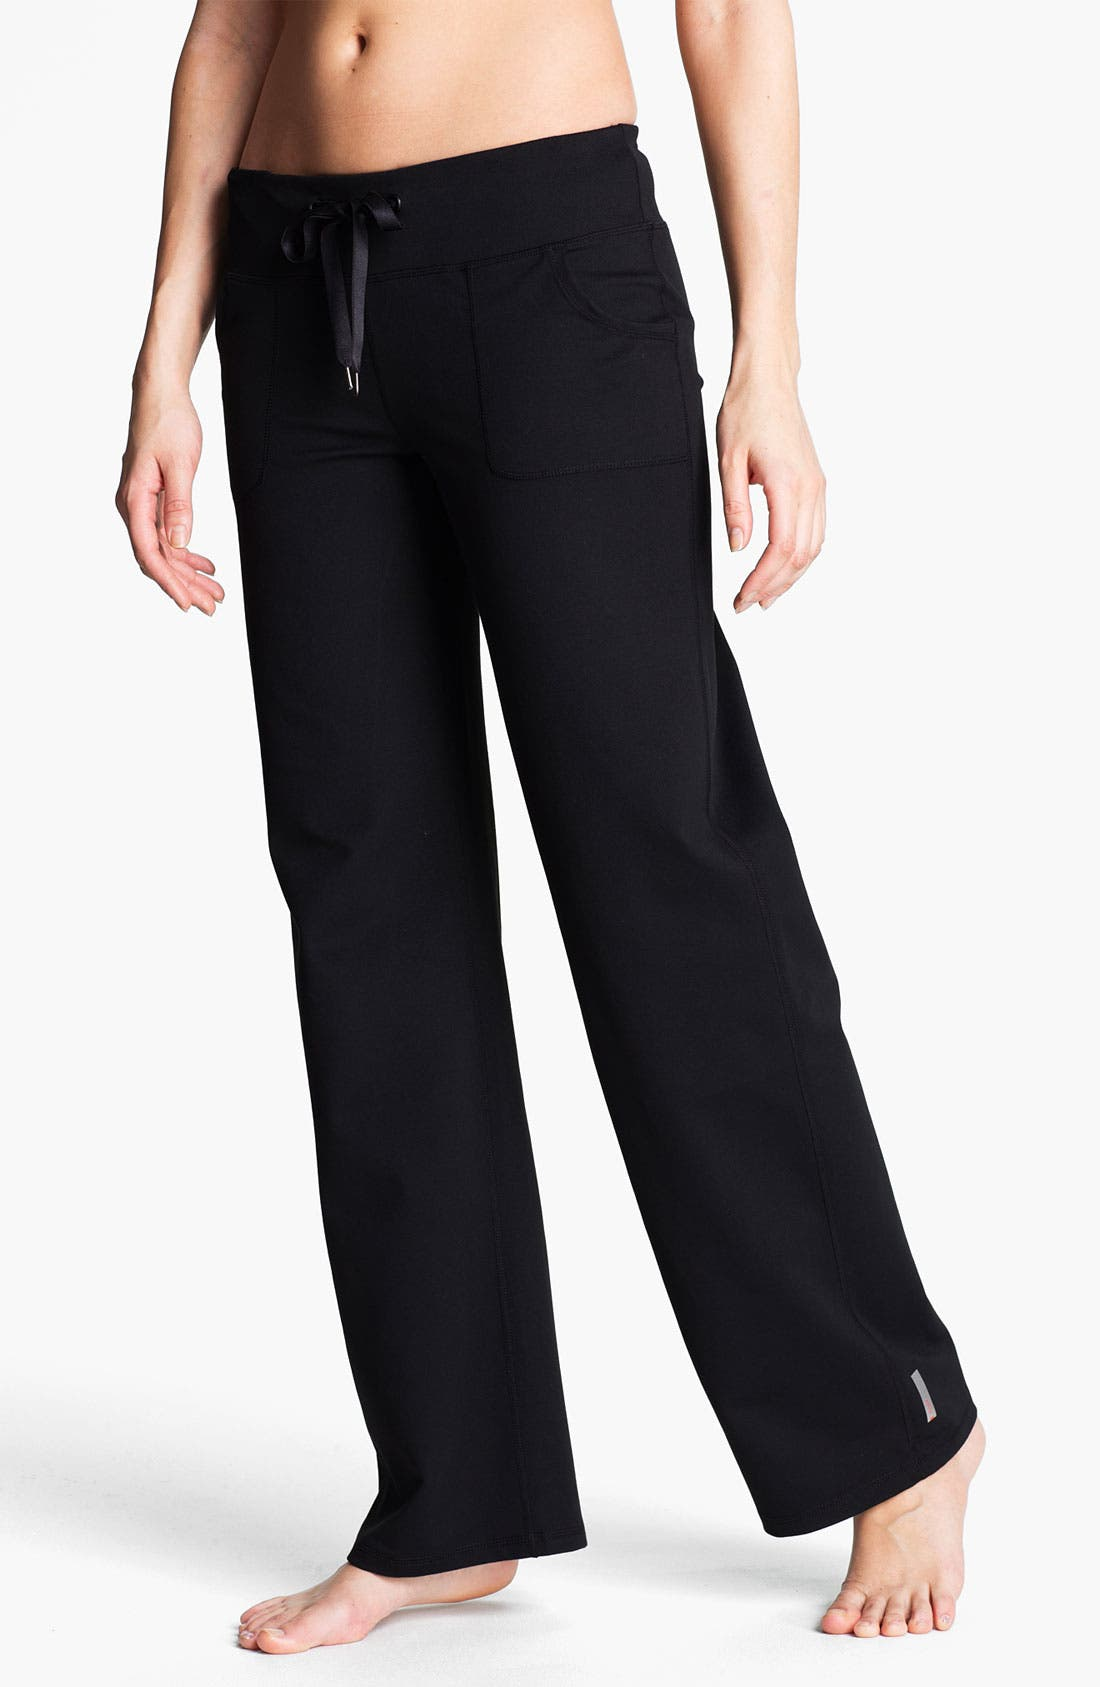 Alternate Image 1 Selected - Zella 'Soul 2' Pants